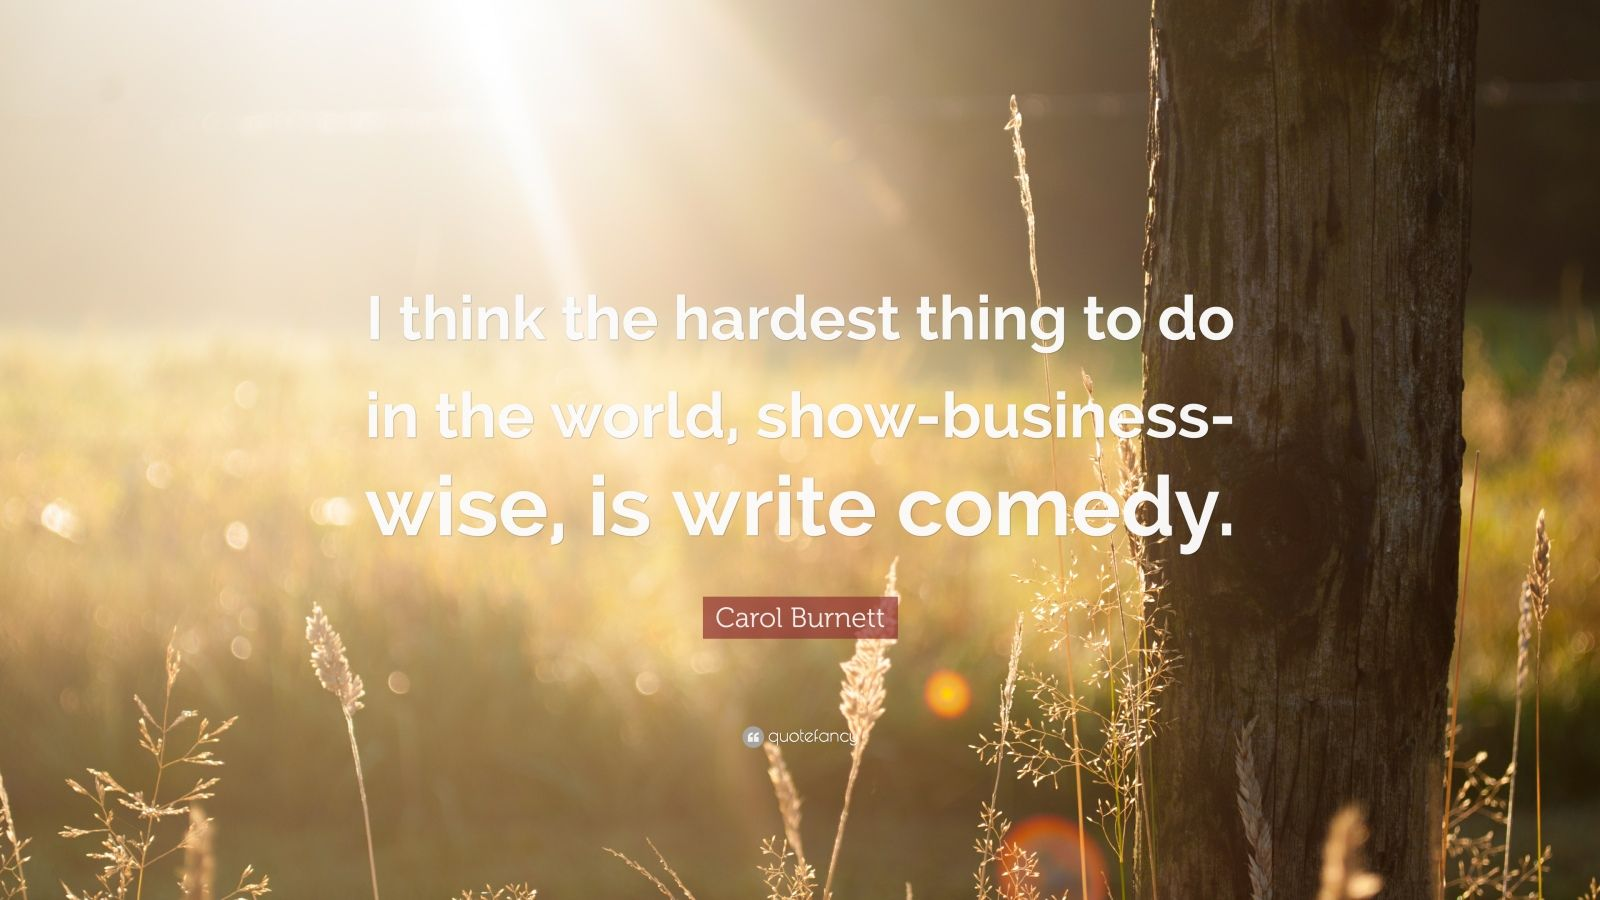 """Carol Burnett Quote: """"I think the hardest thing to do in the world, show-business-wise, is write comedy."""""""